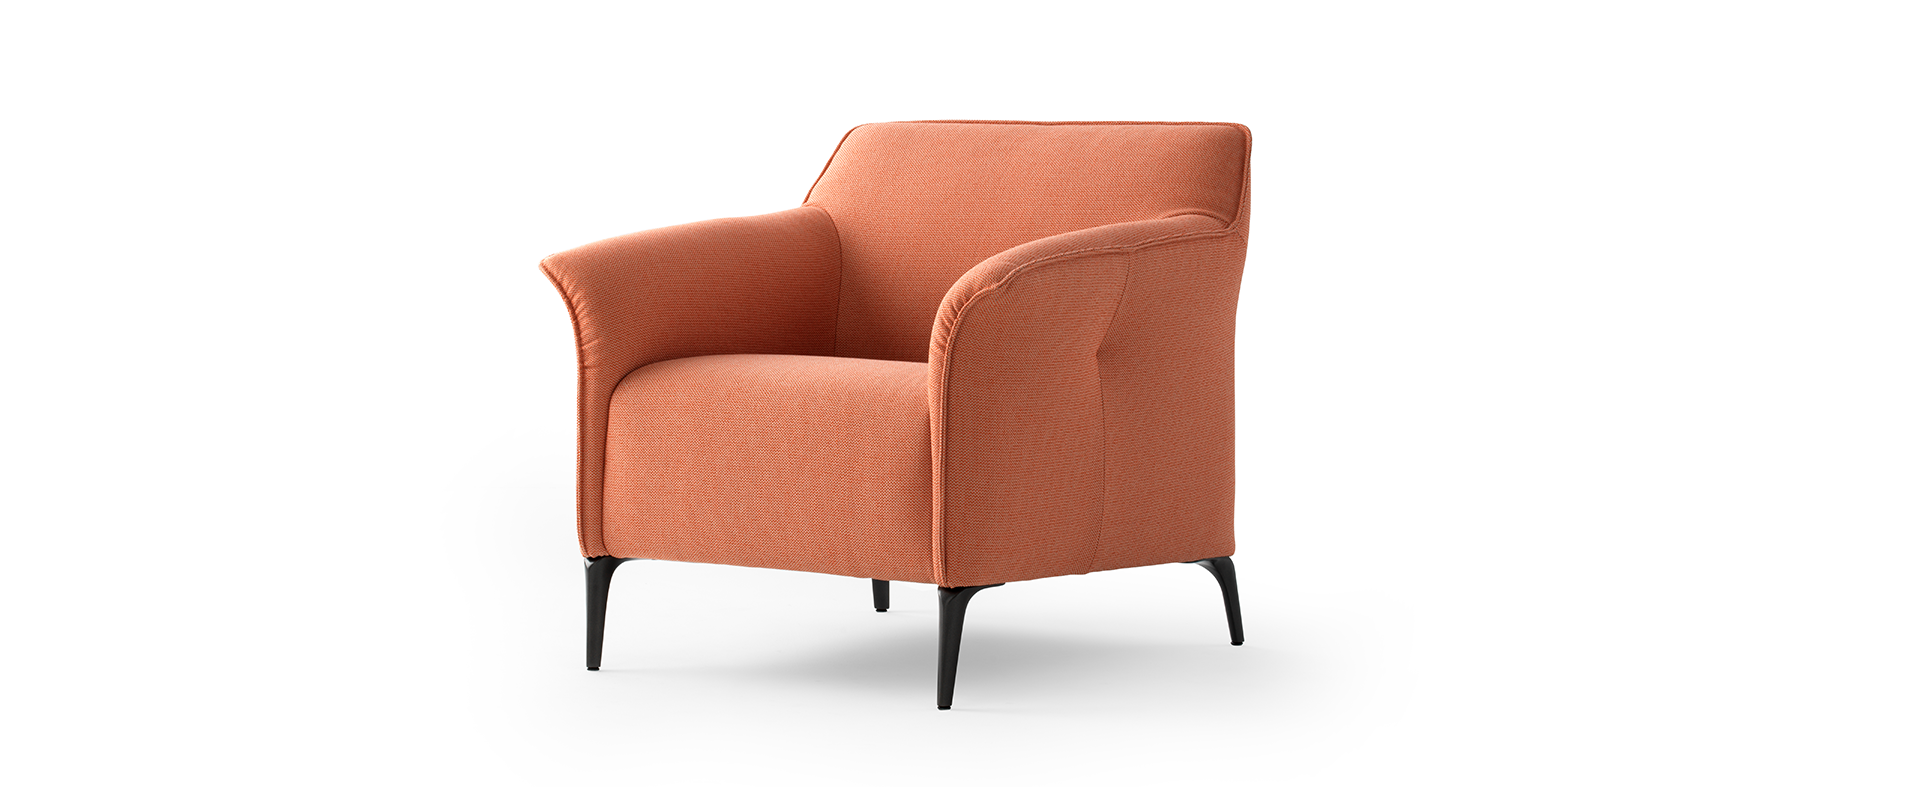 Amalia Lounge Sessel Ergonomische Form Attraktiv Design Awesome ...